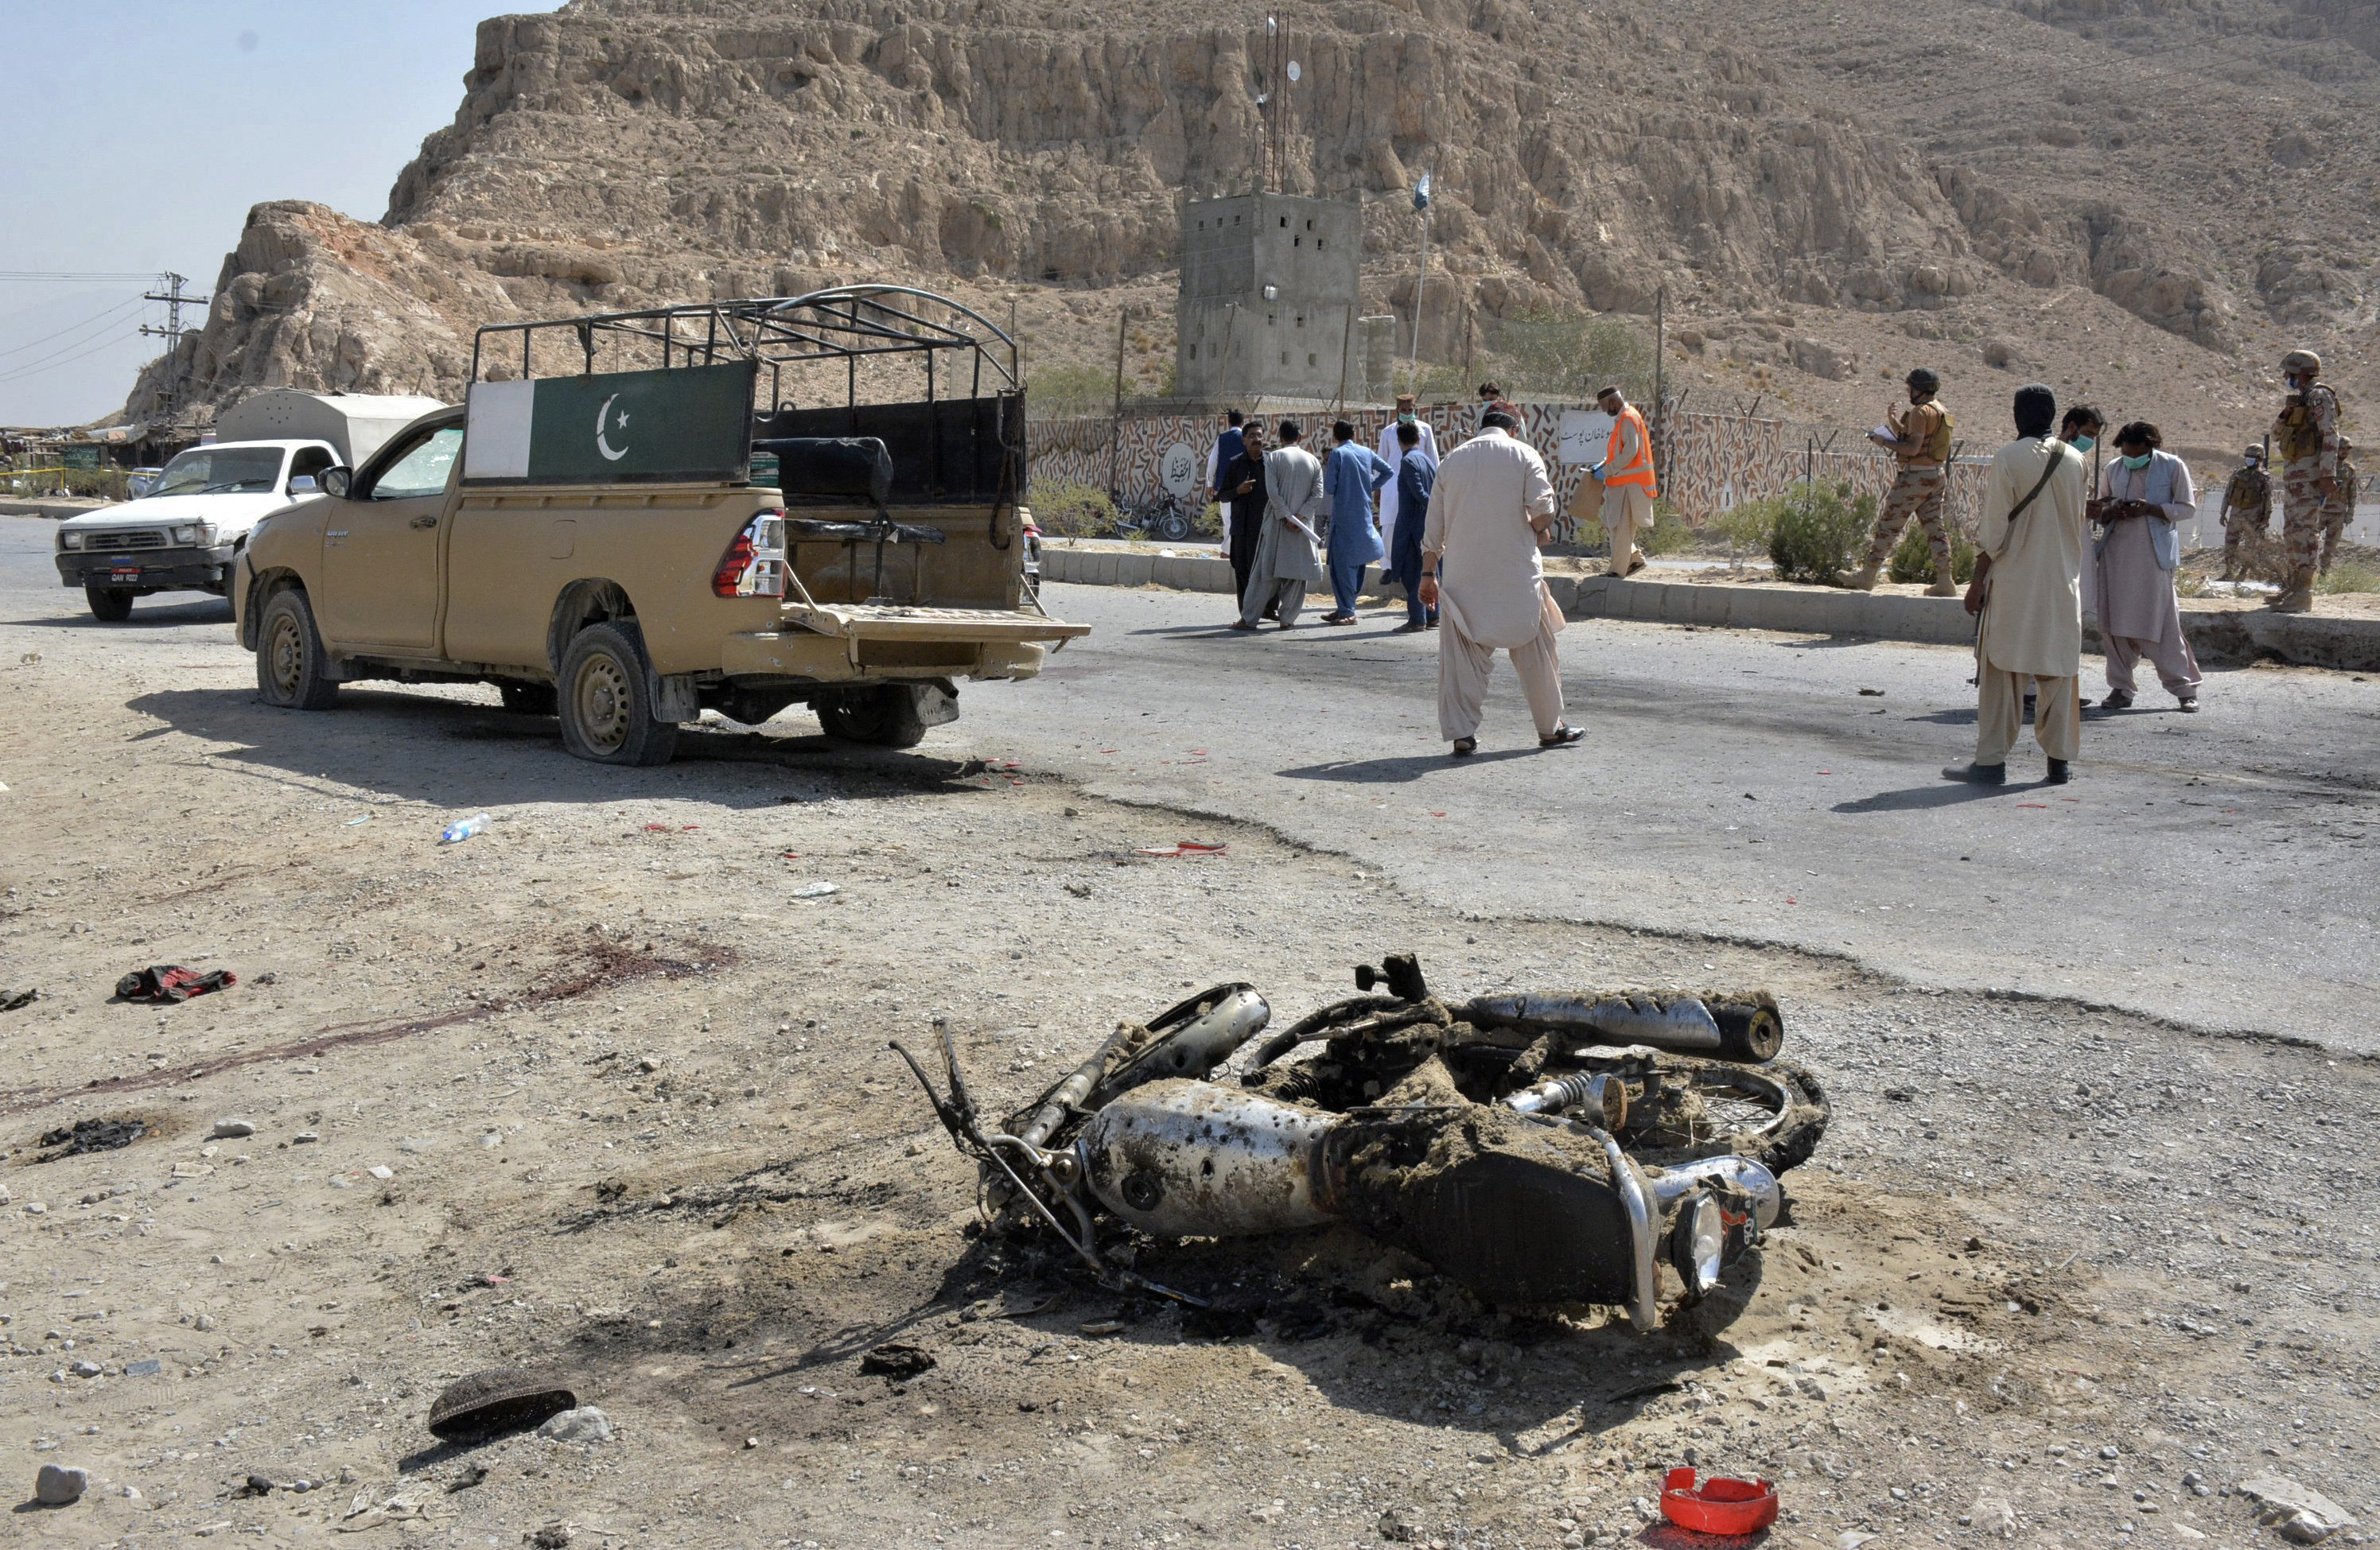 Suicide attack by Pakistan's Taliban kills at least 4, injures 20